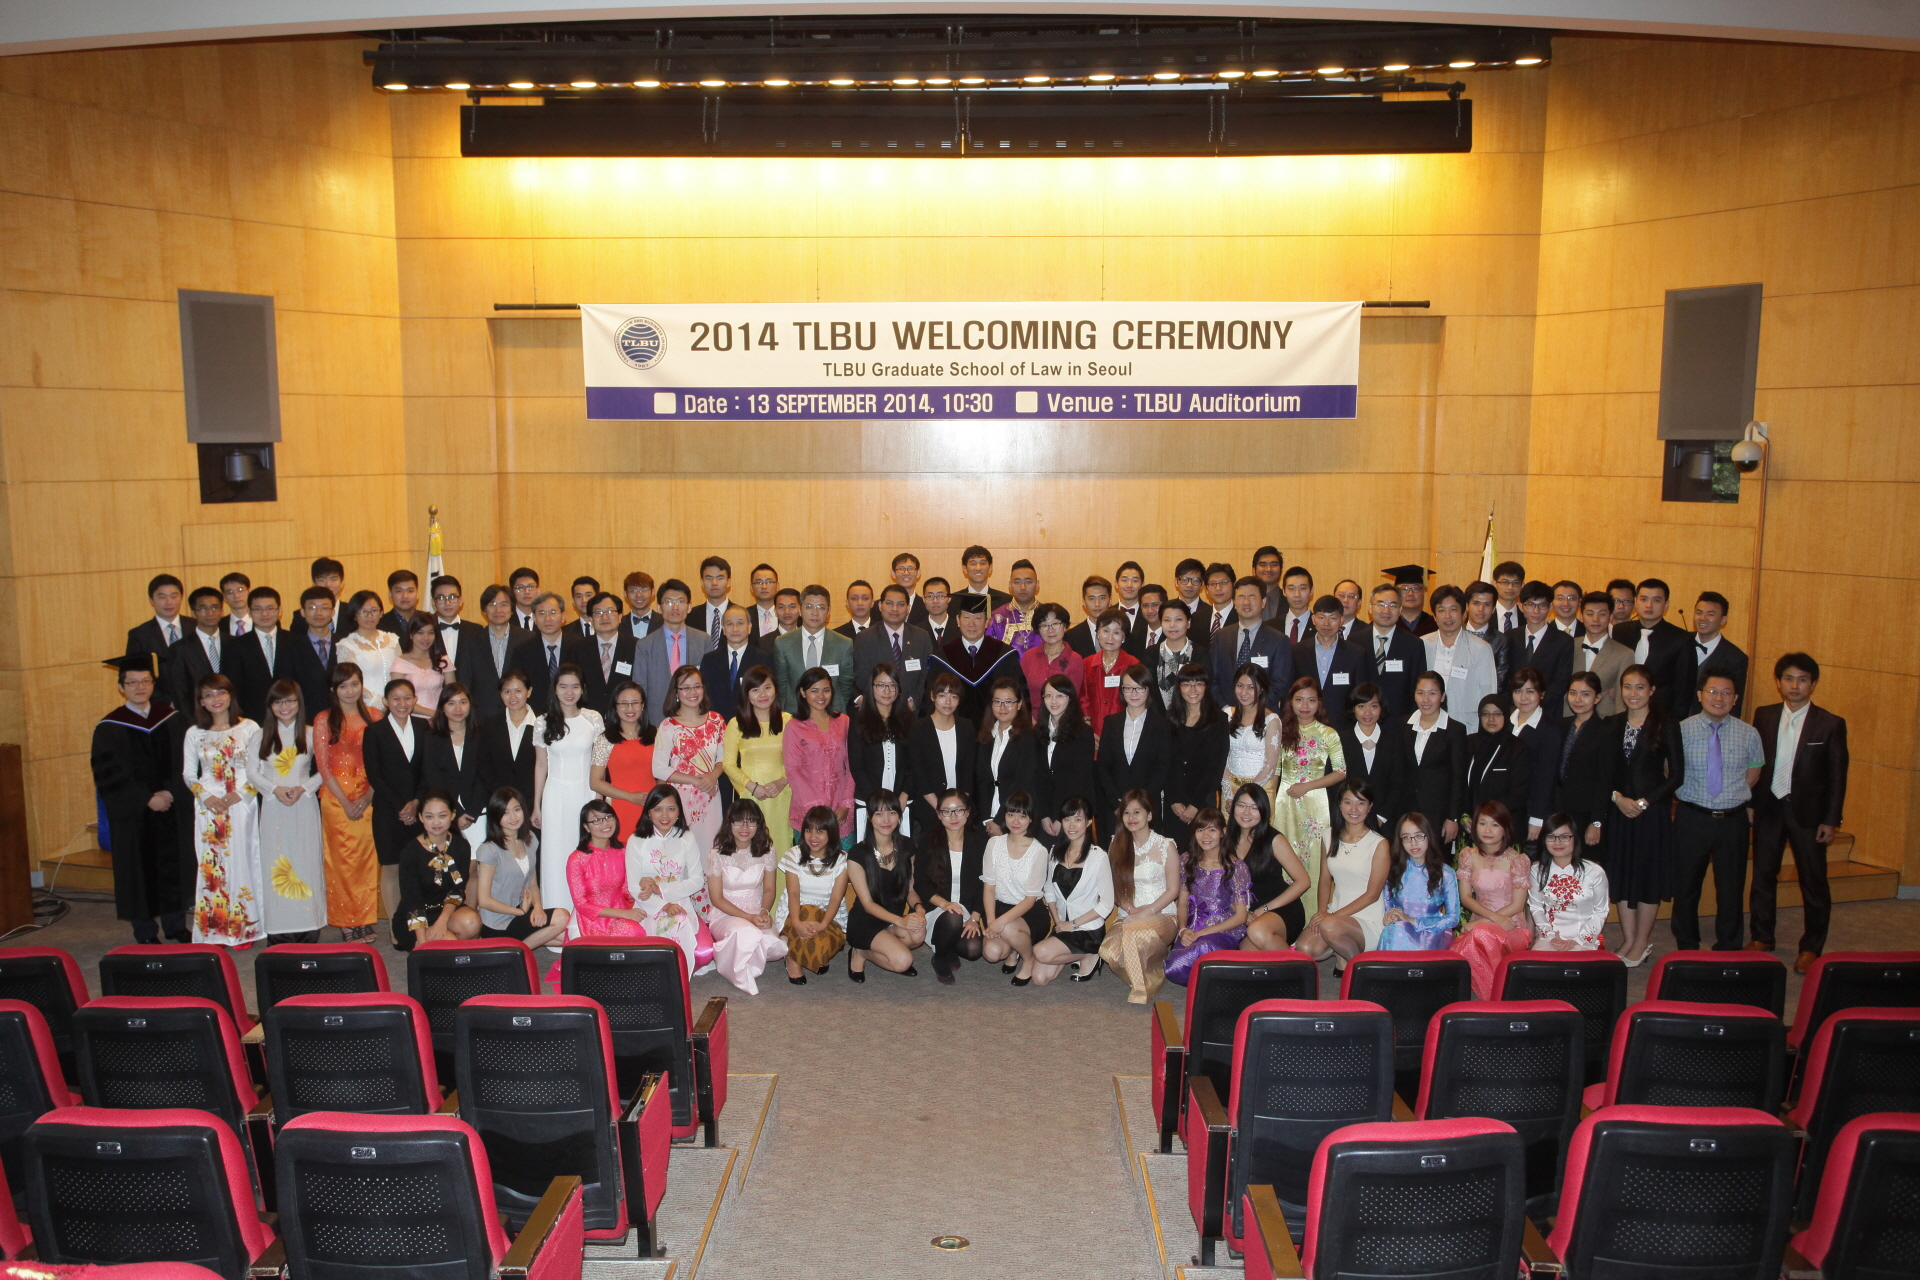 2014 TLBU Welcoming Ceremony